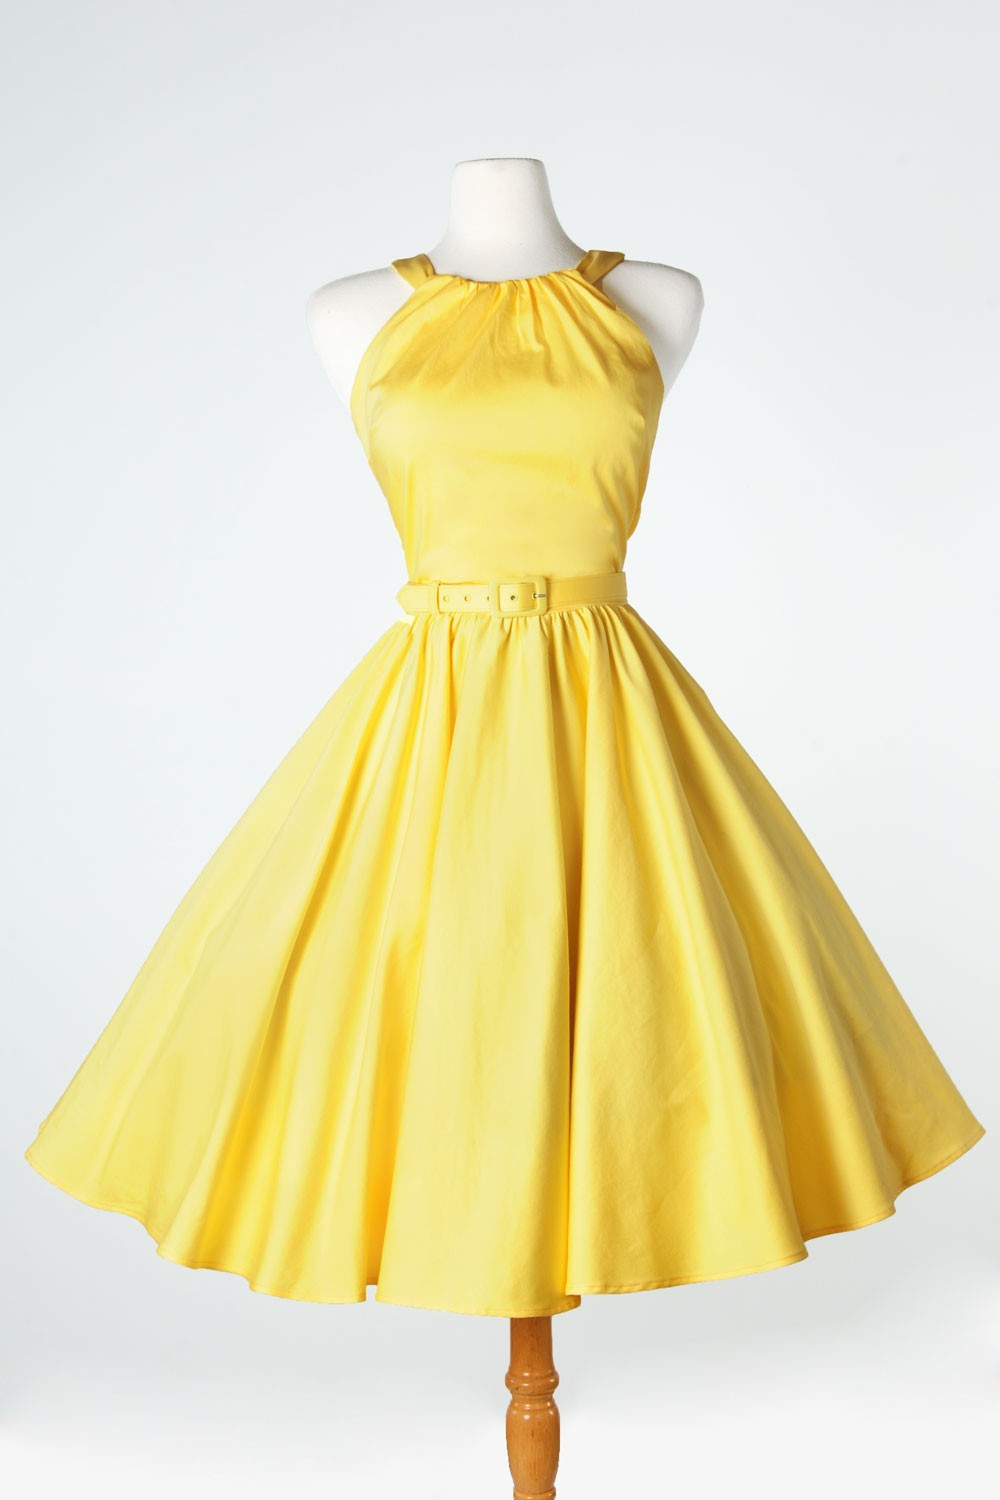 'Harley' Dress 1950s Pinup Gril Vintage Sexy Halter Swing Dresses in Pastel Yellow-in Dresses